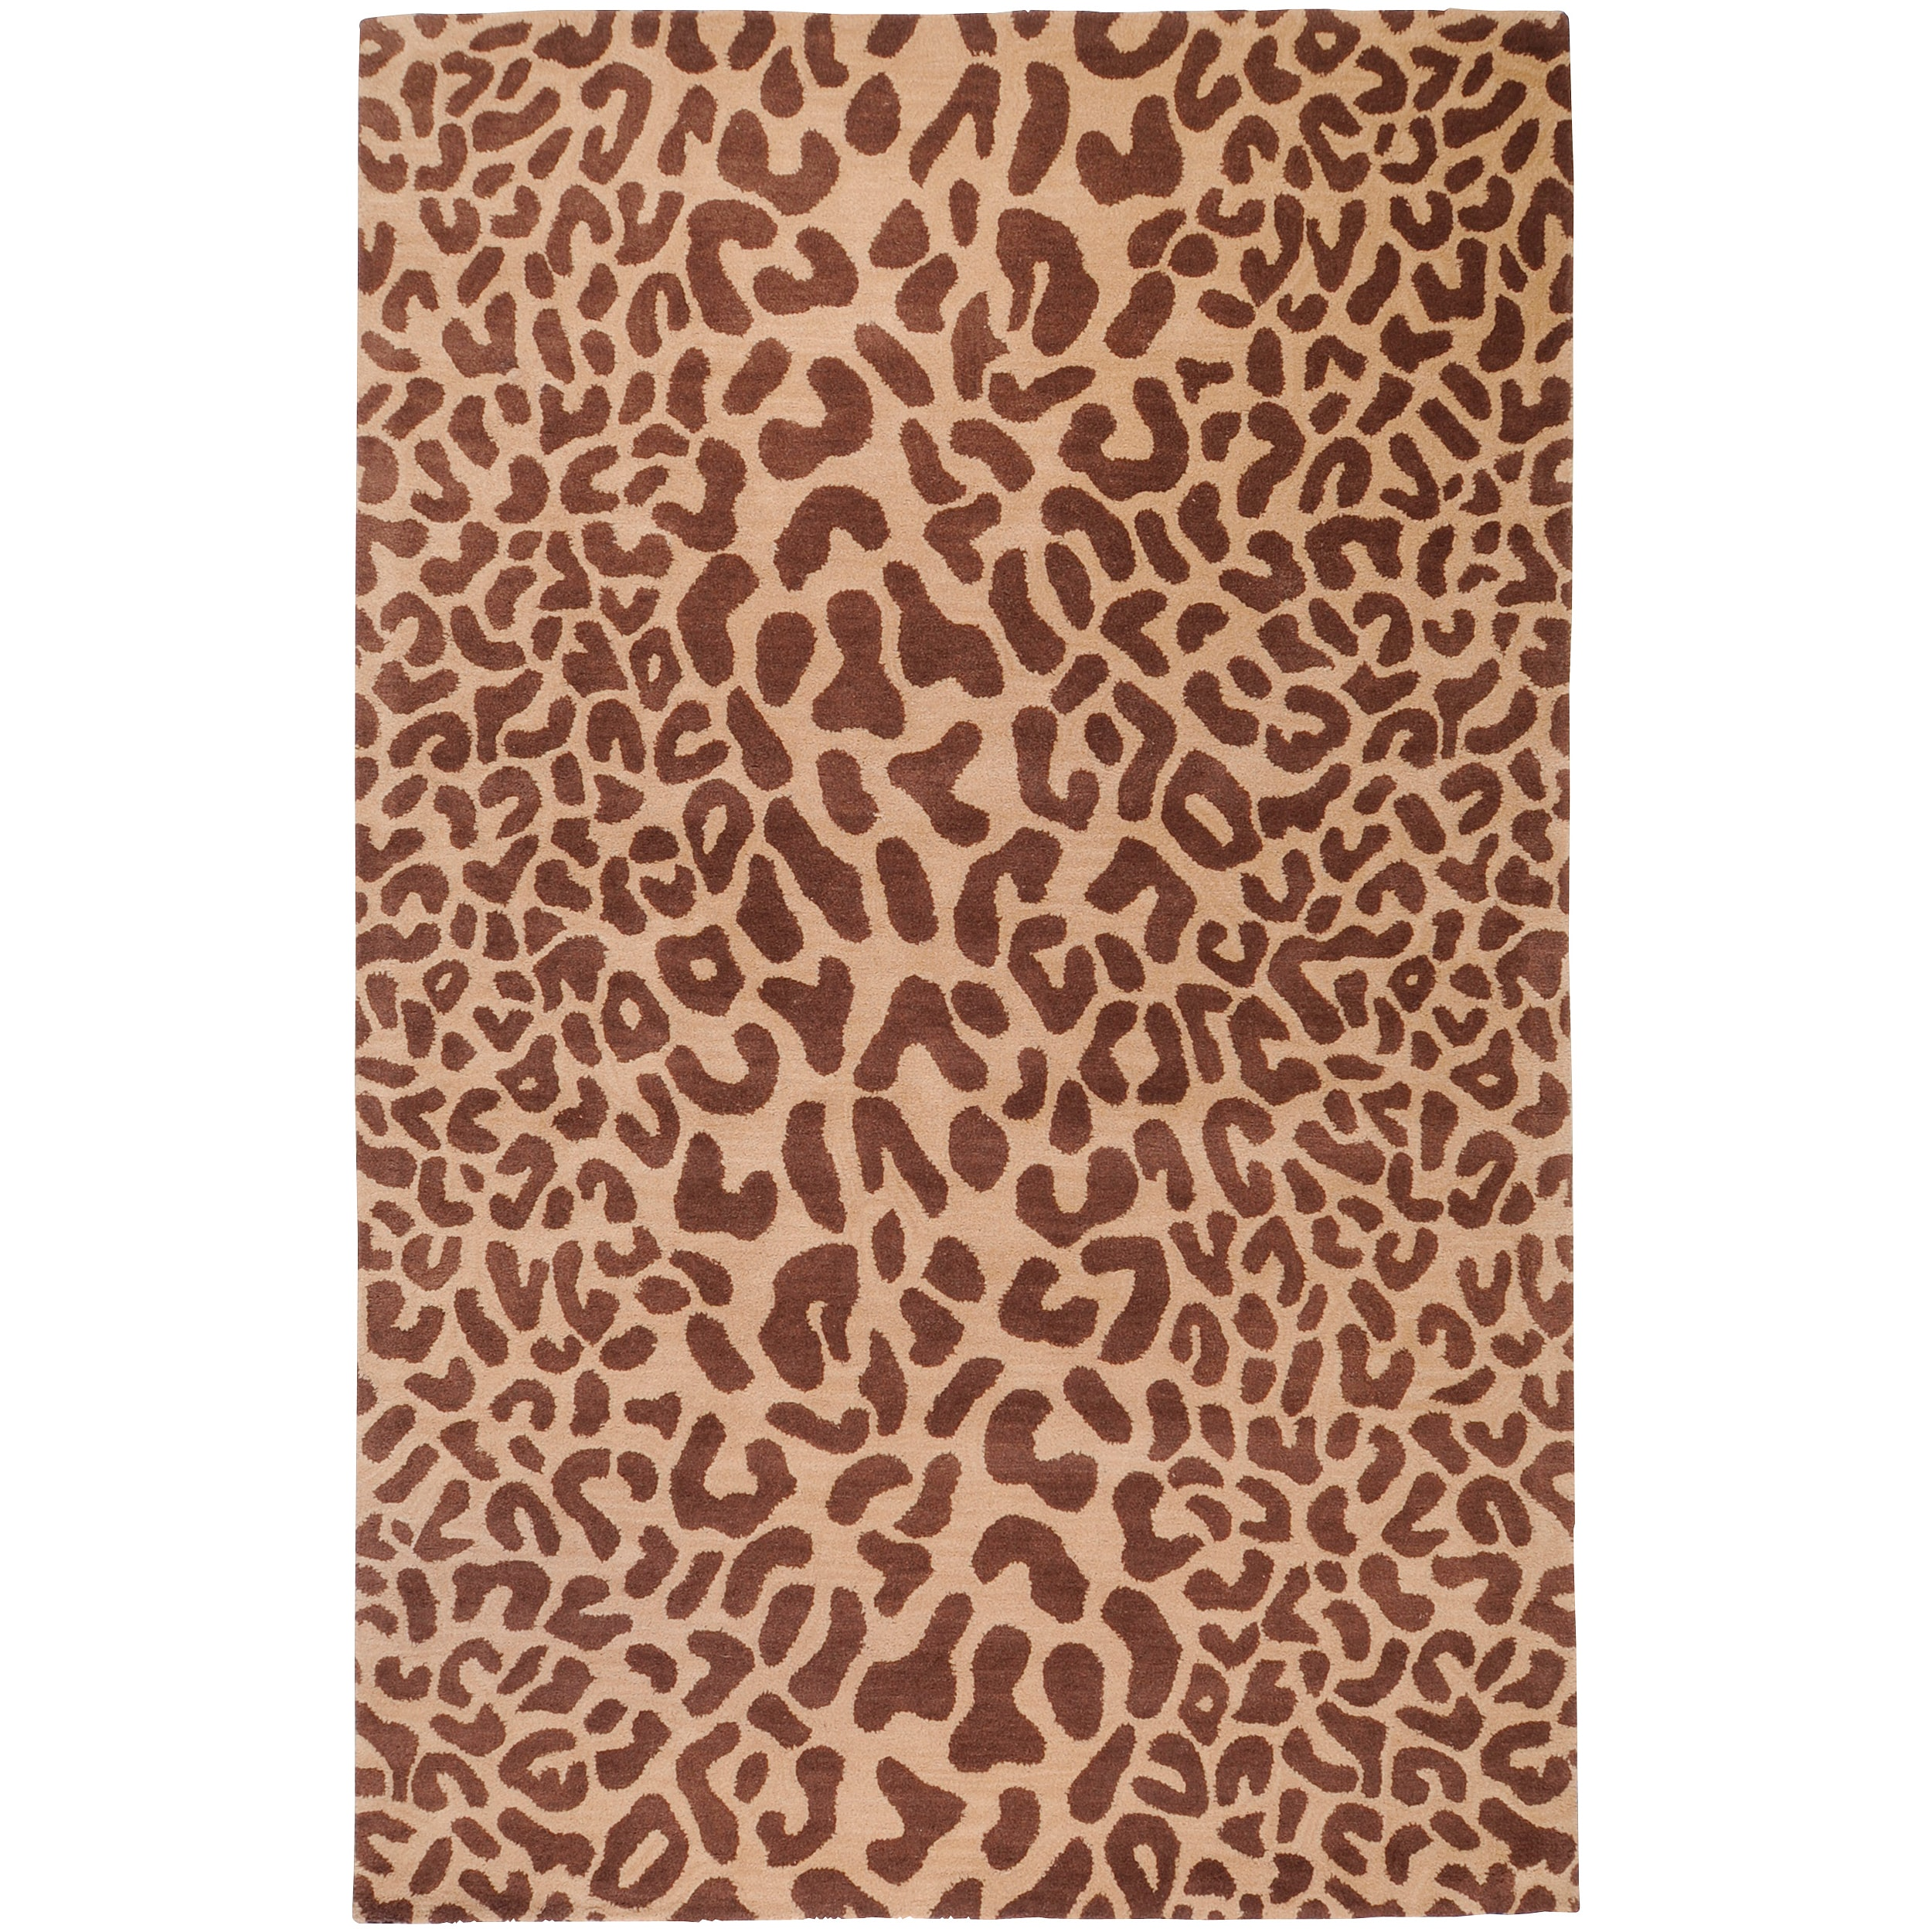 Hand-tufted Tan Leopard Strasbourg Animal Print Wool Rug (2' x 3') - Thumbnail 0